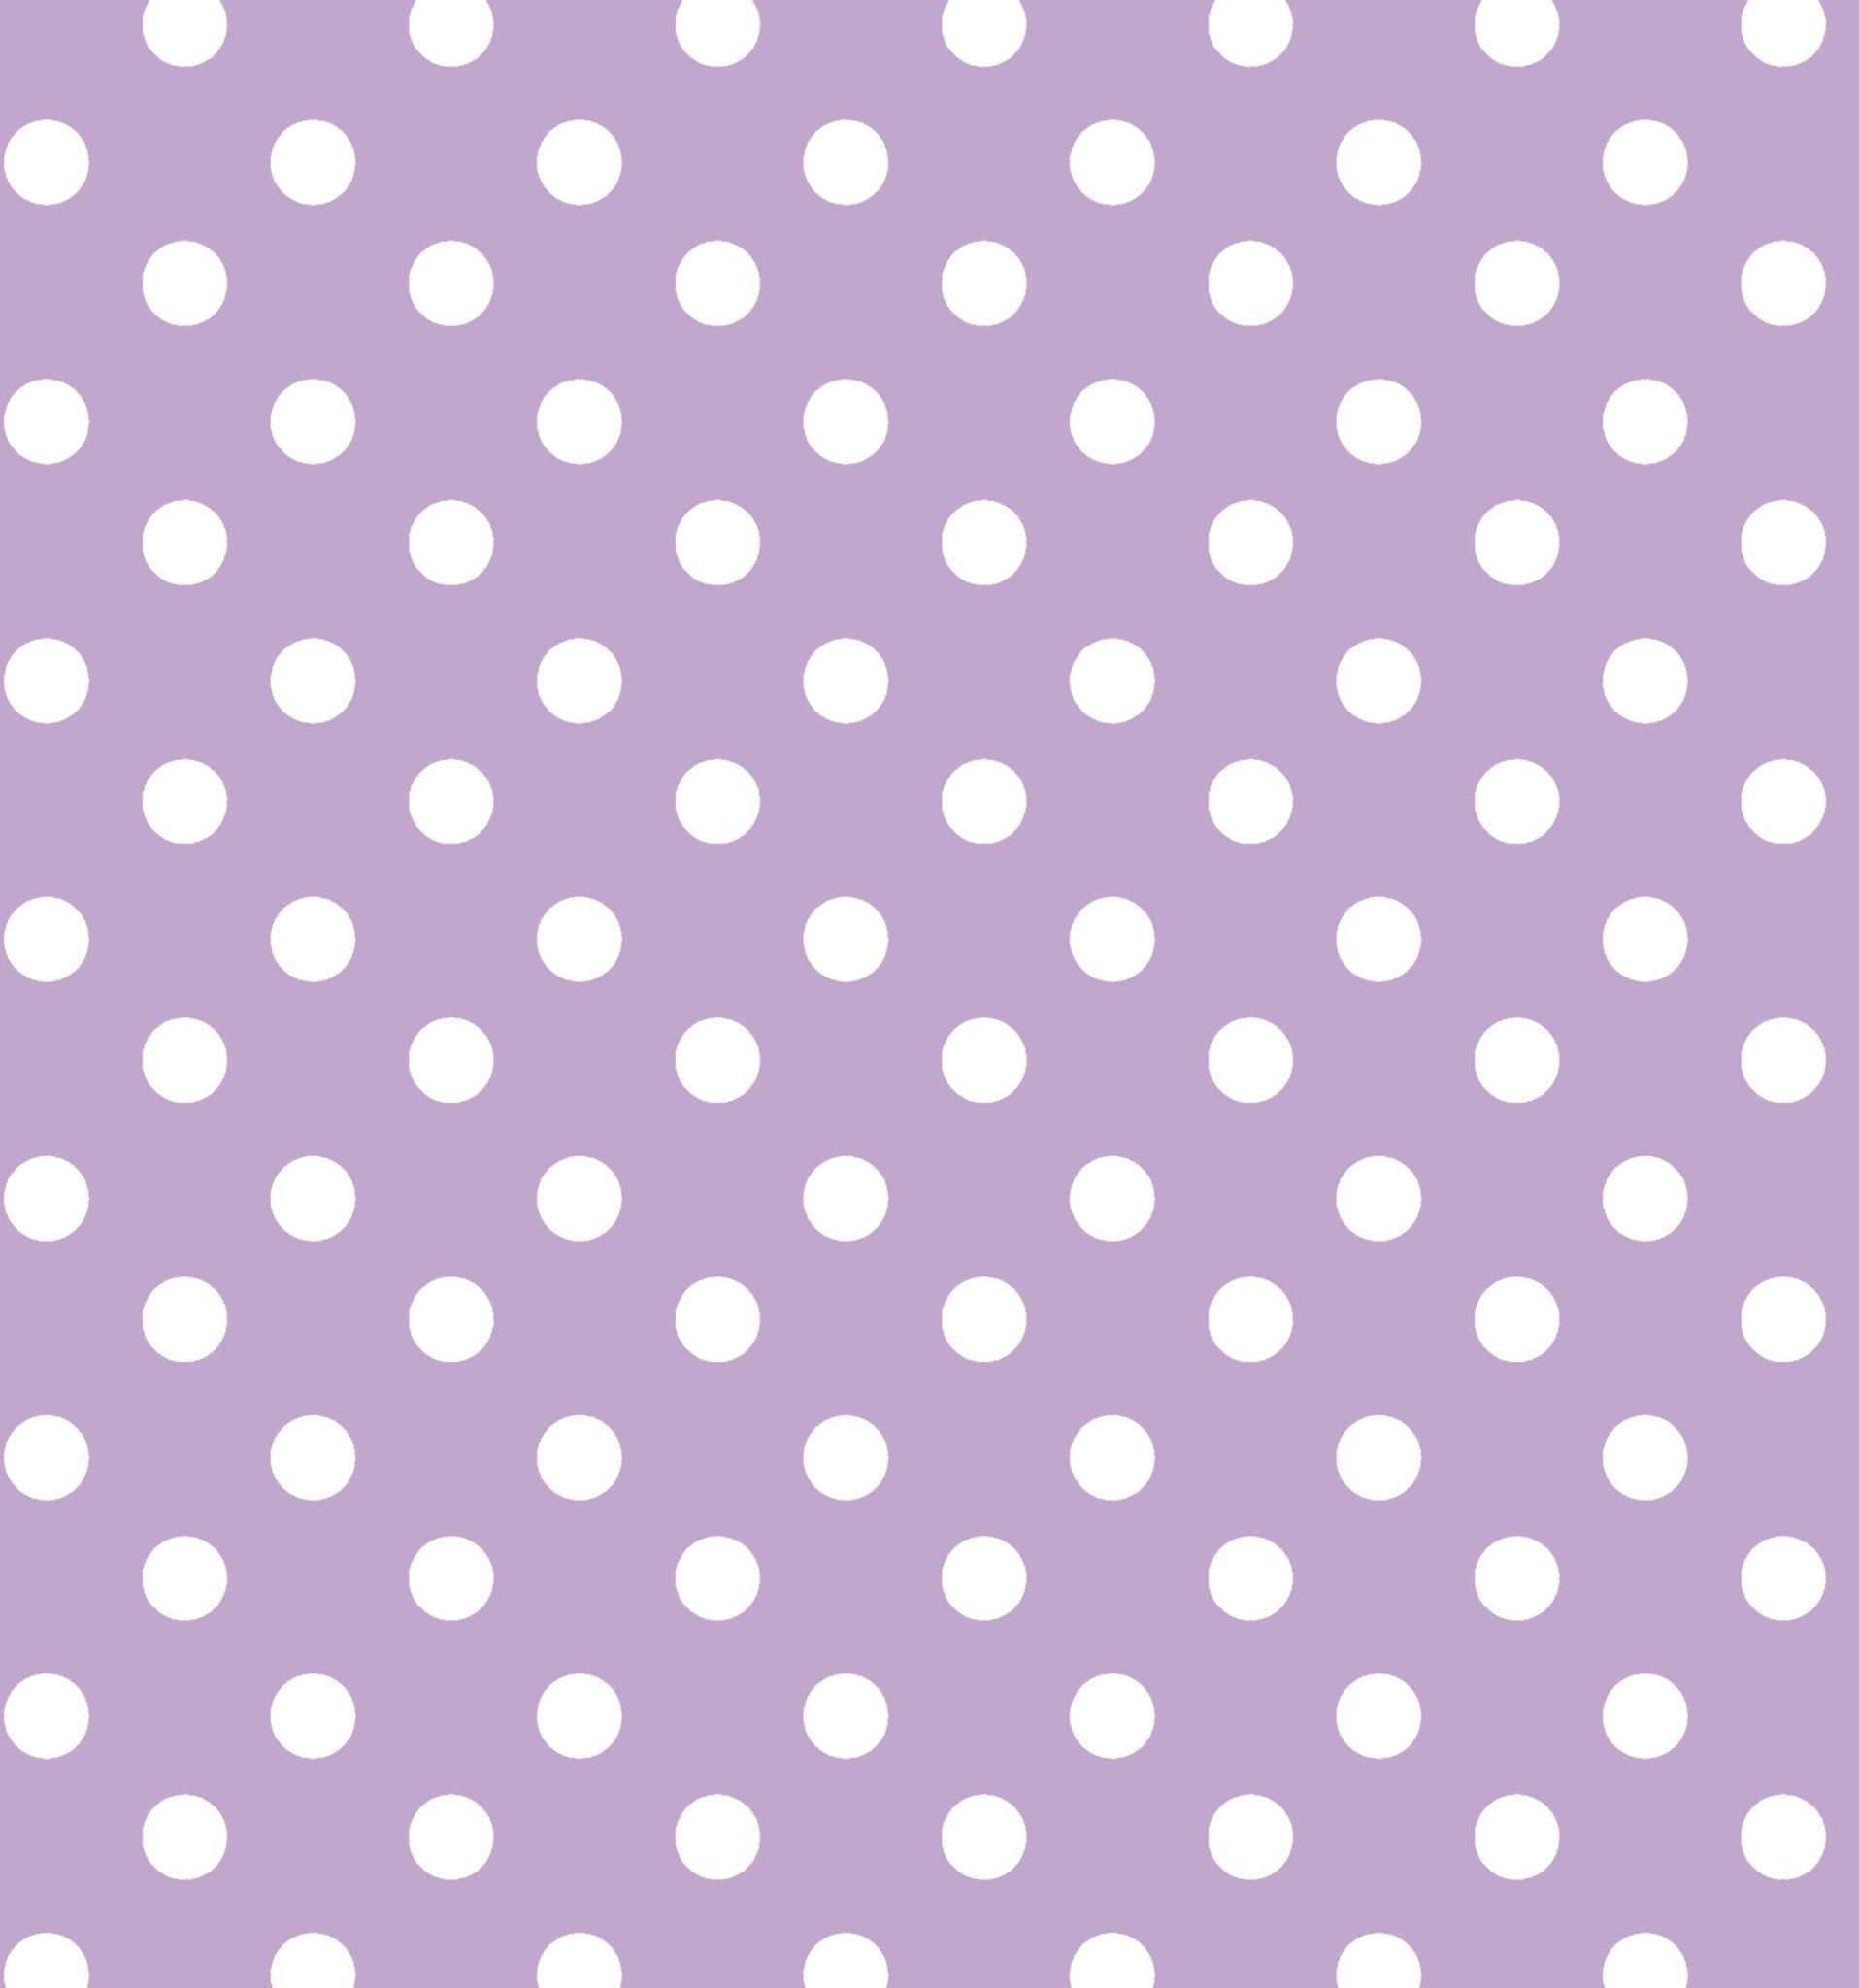 Cotton Flannel Print Polkadot Lilac